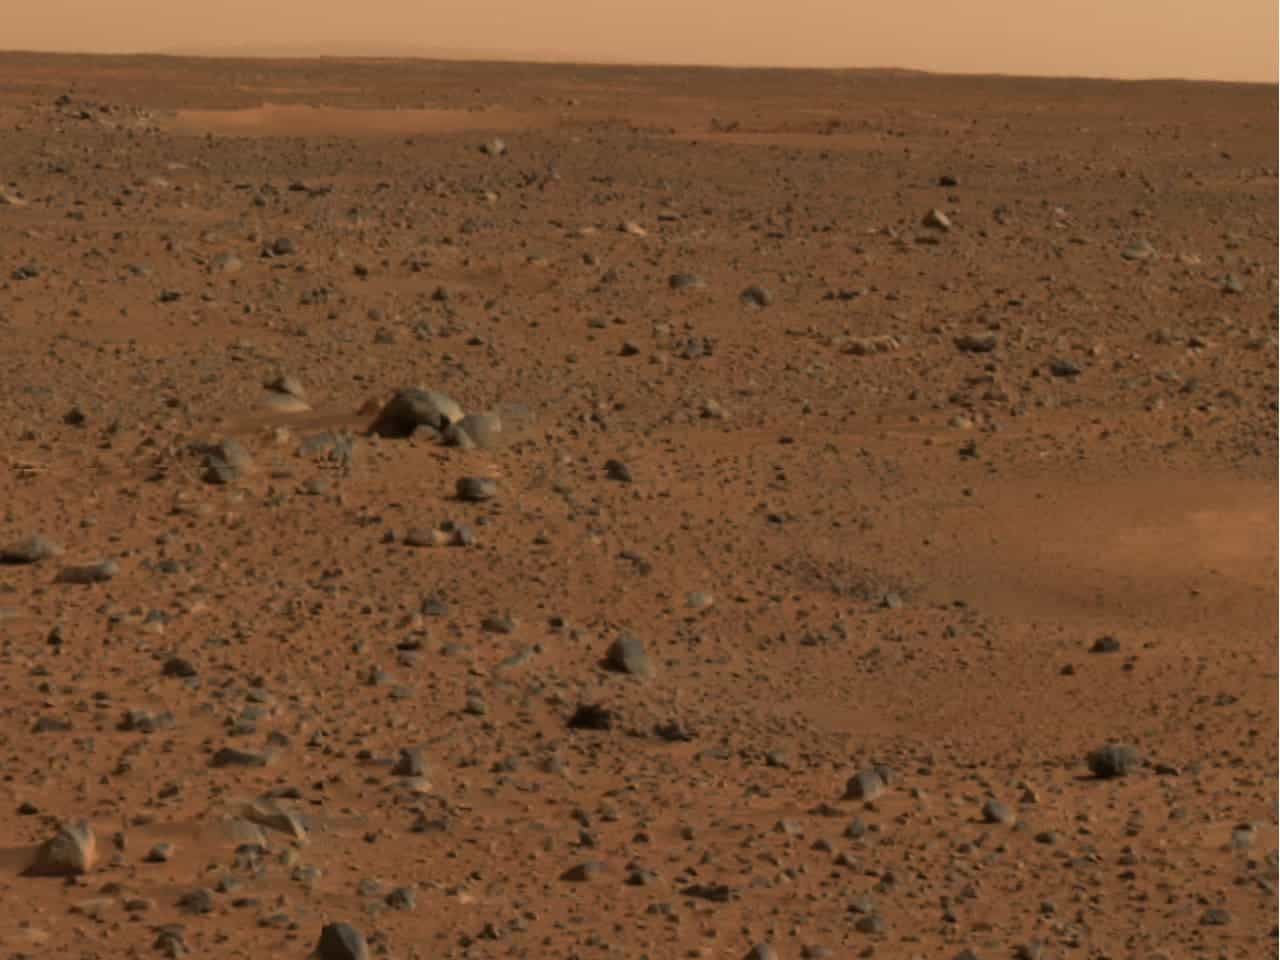 Martian soil. Credit: NASA.